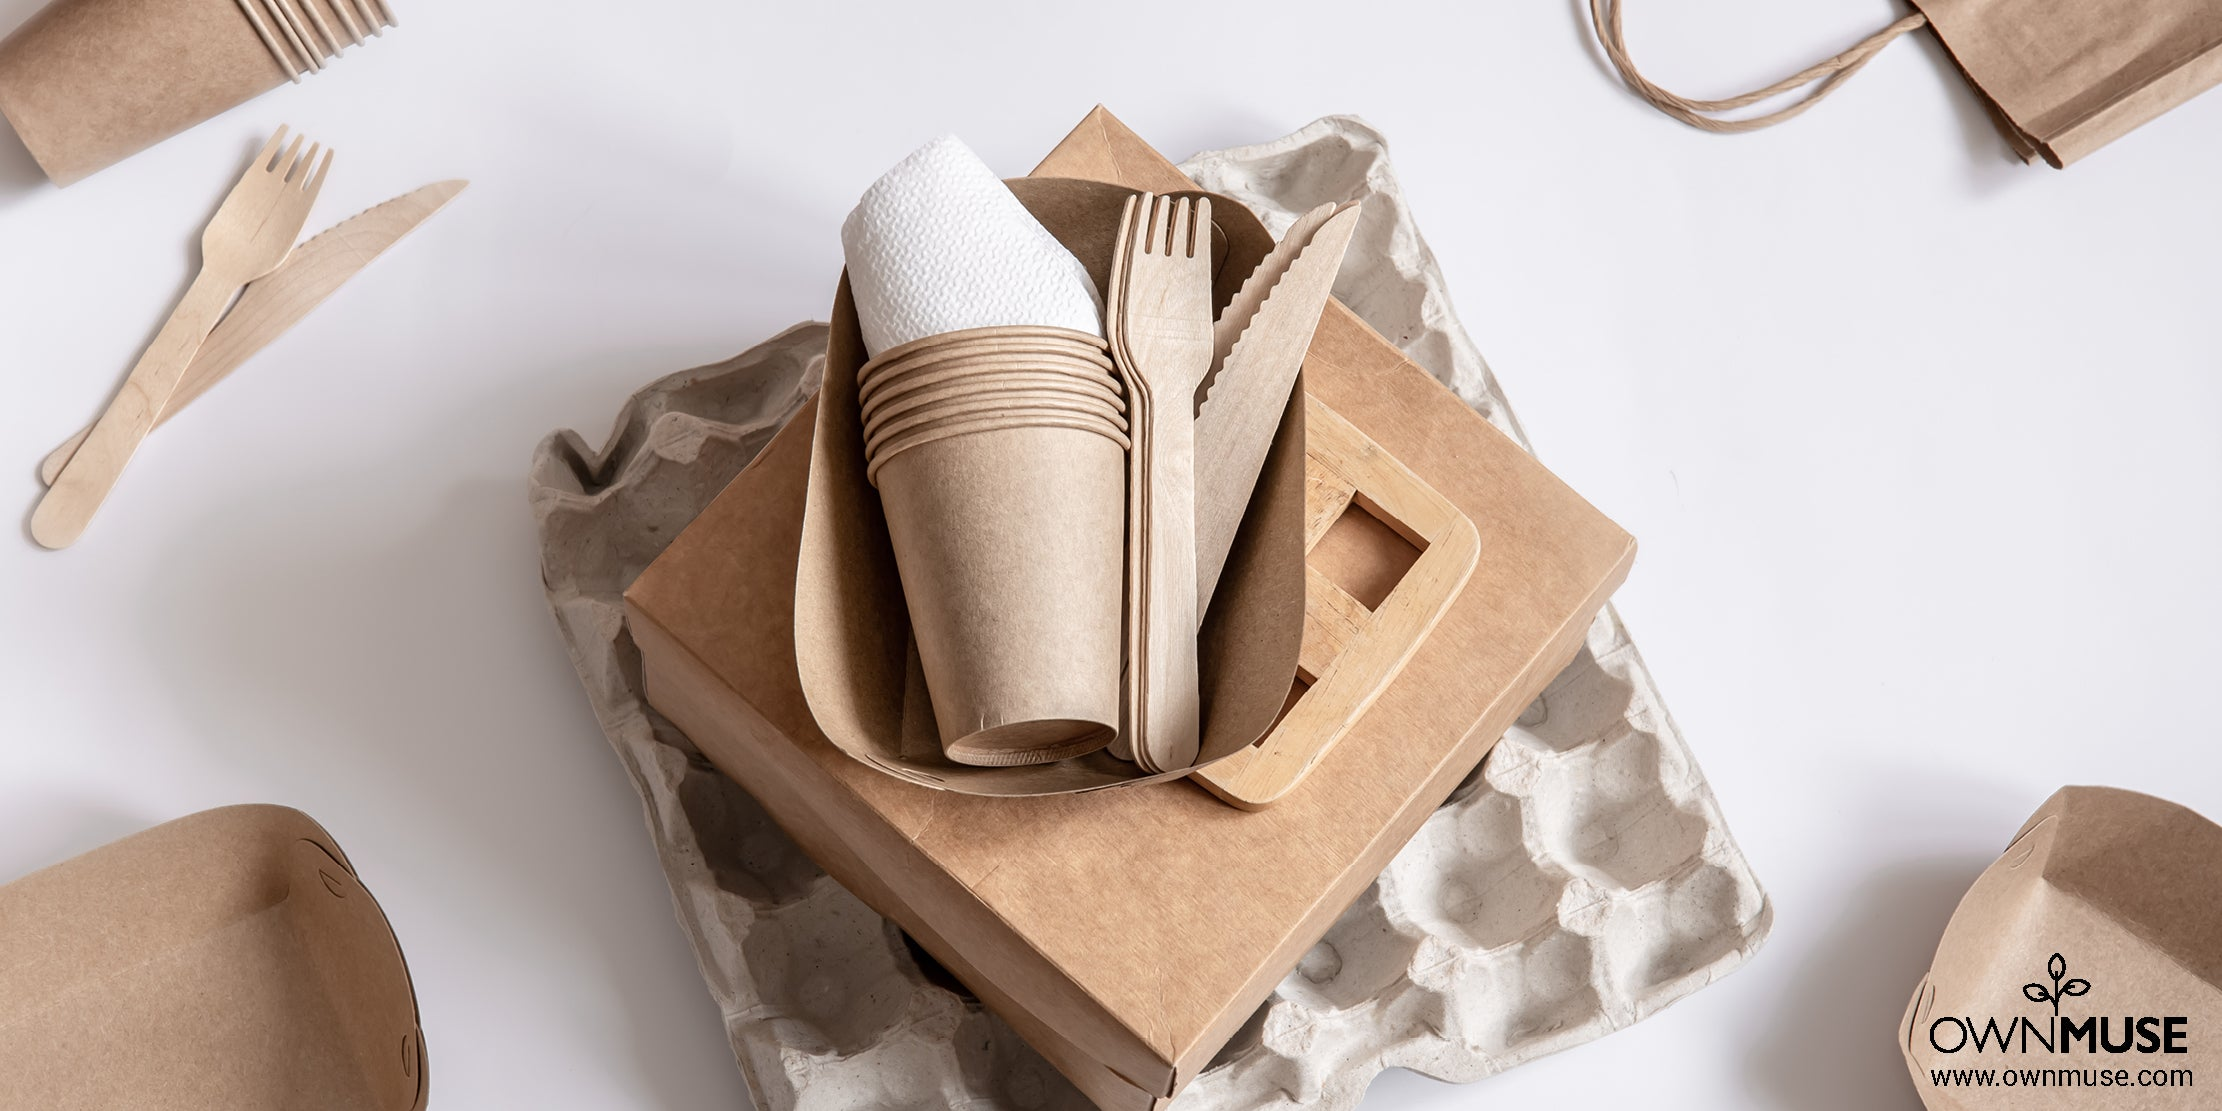 What is the difference between Biodegradable and Compostable?